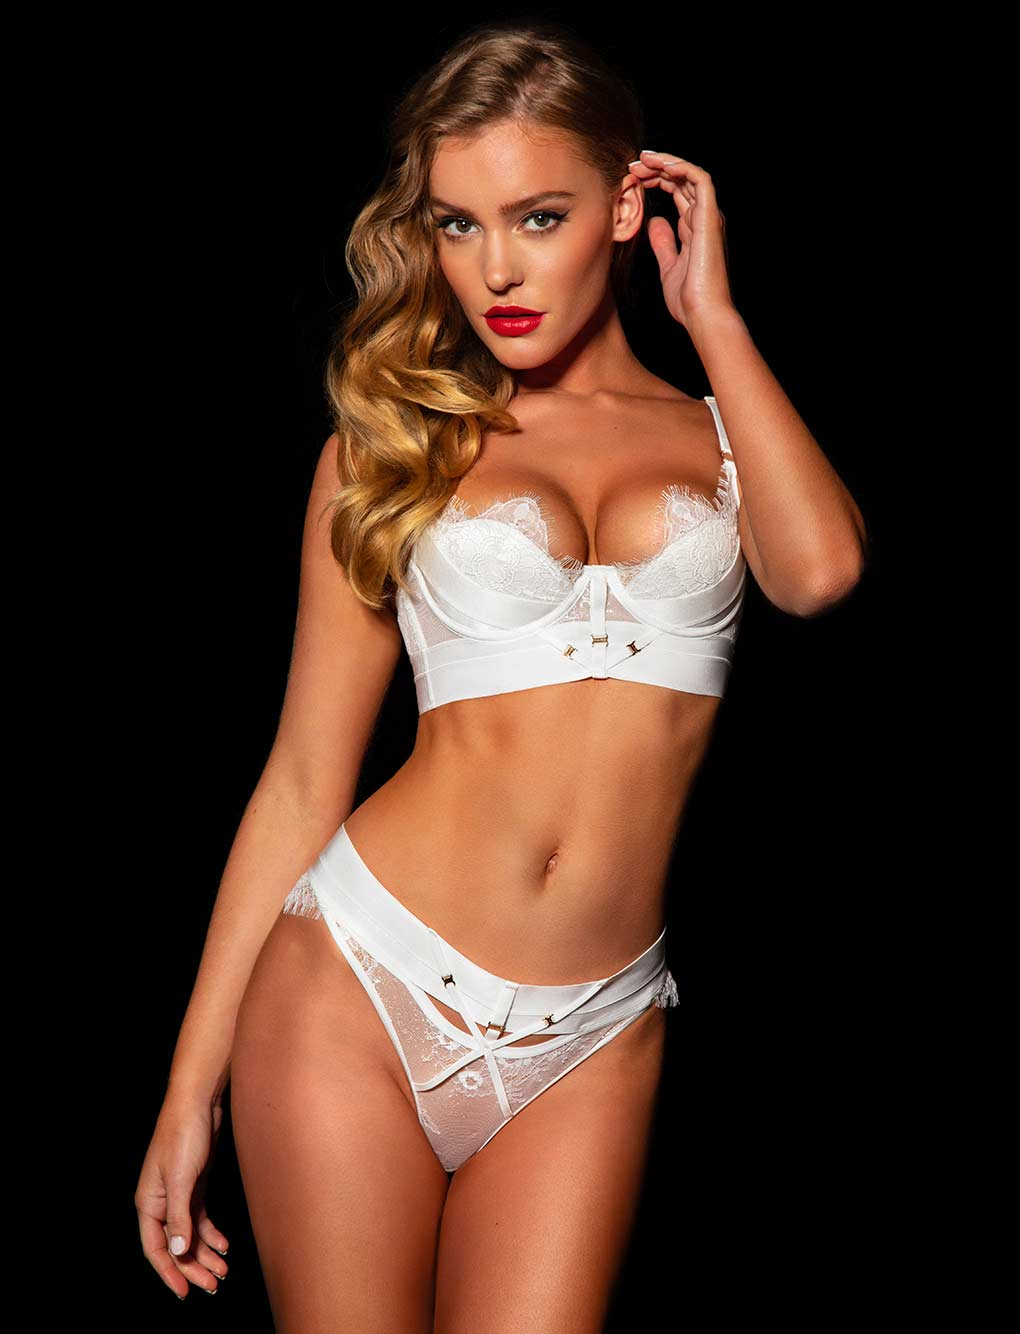 Belinda Ivory Bra & Bottoms Set